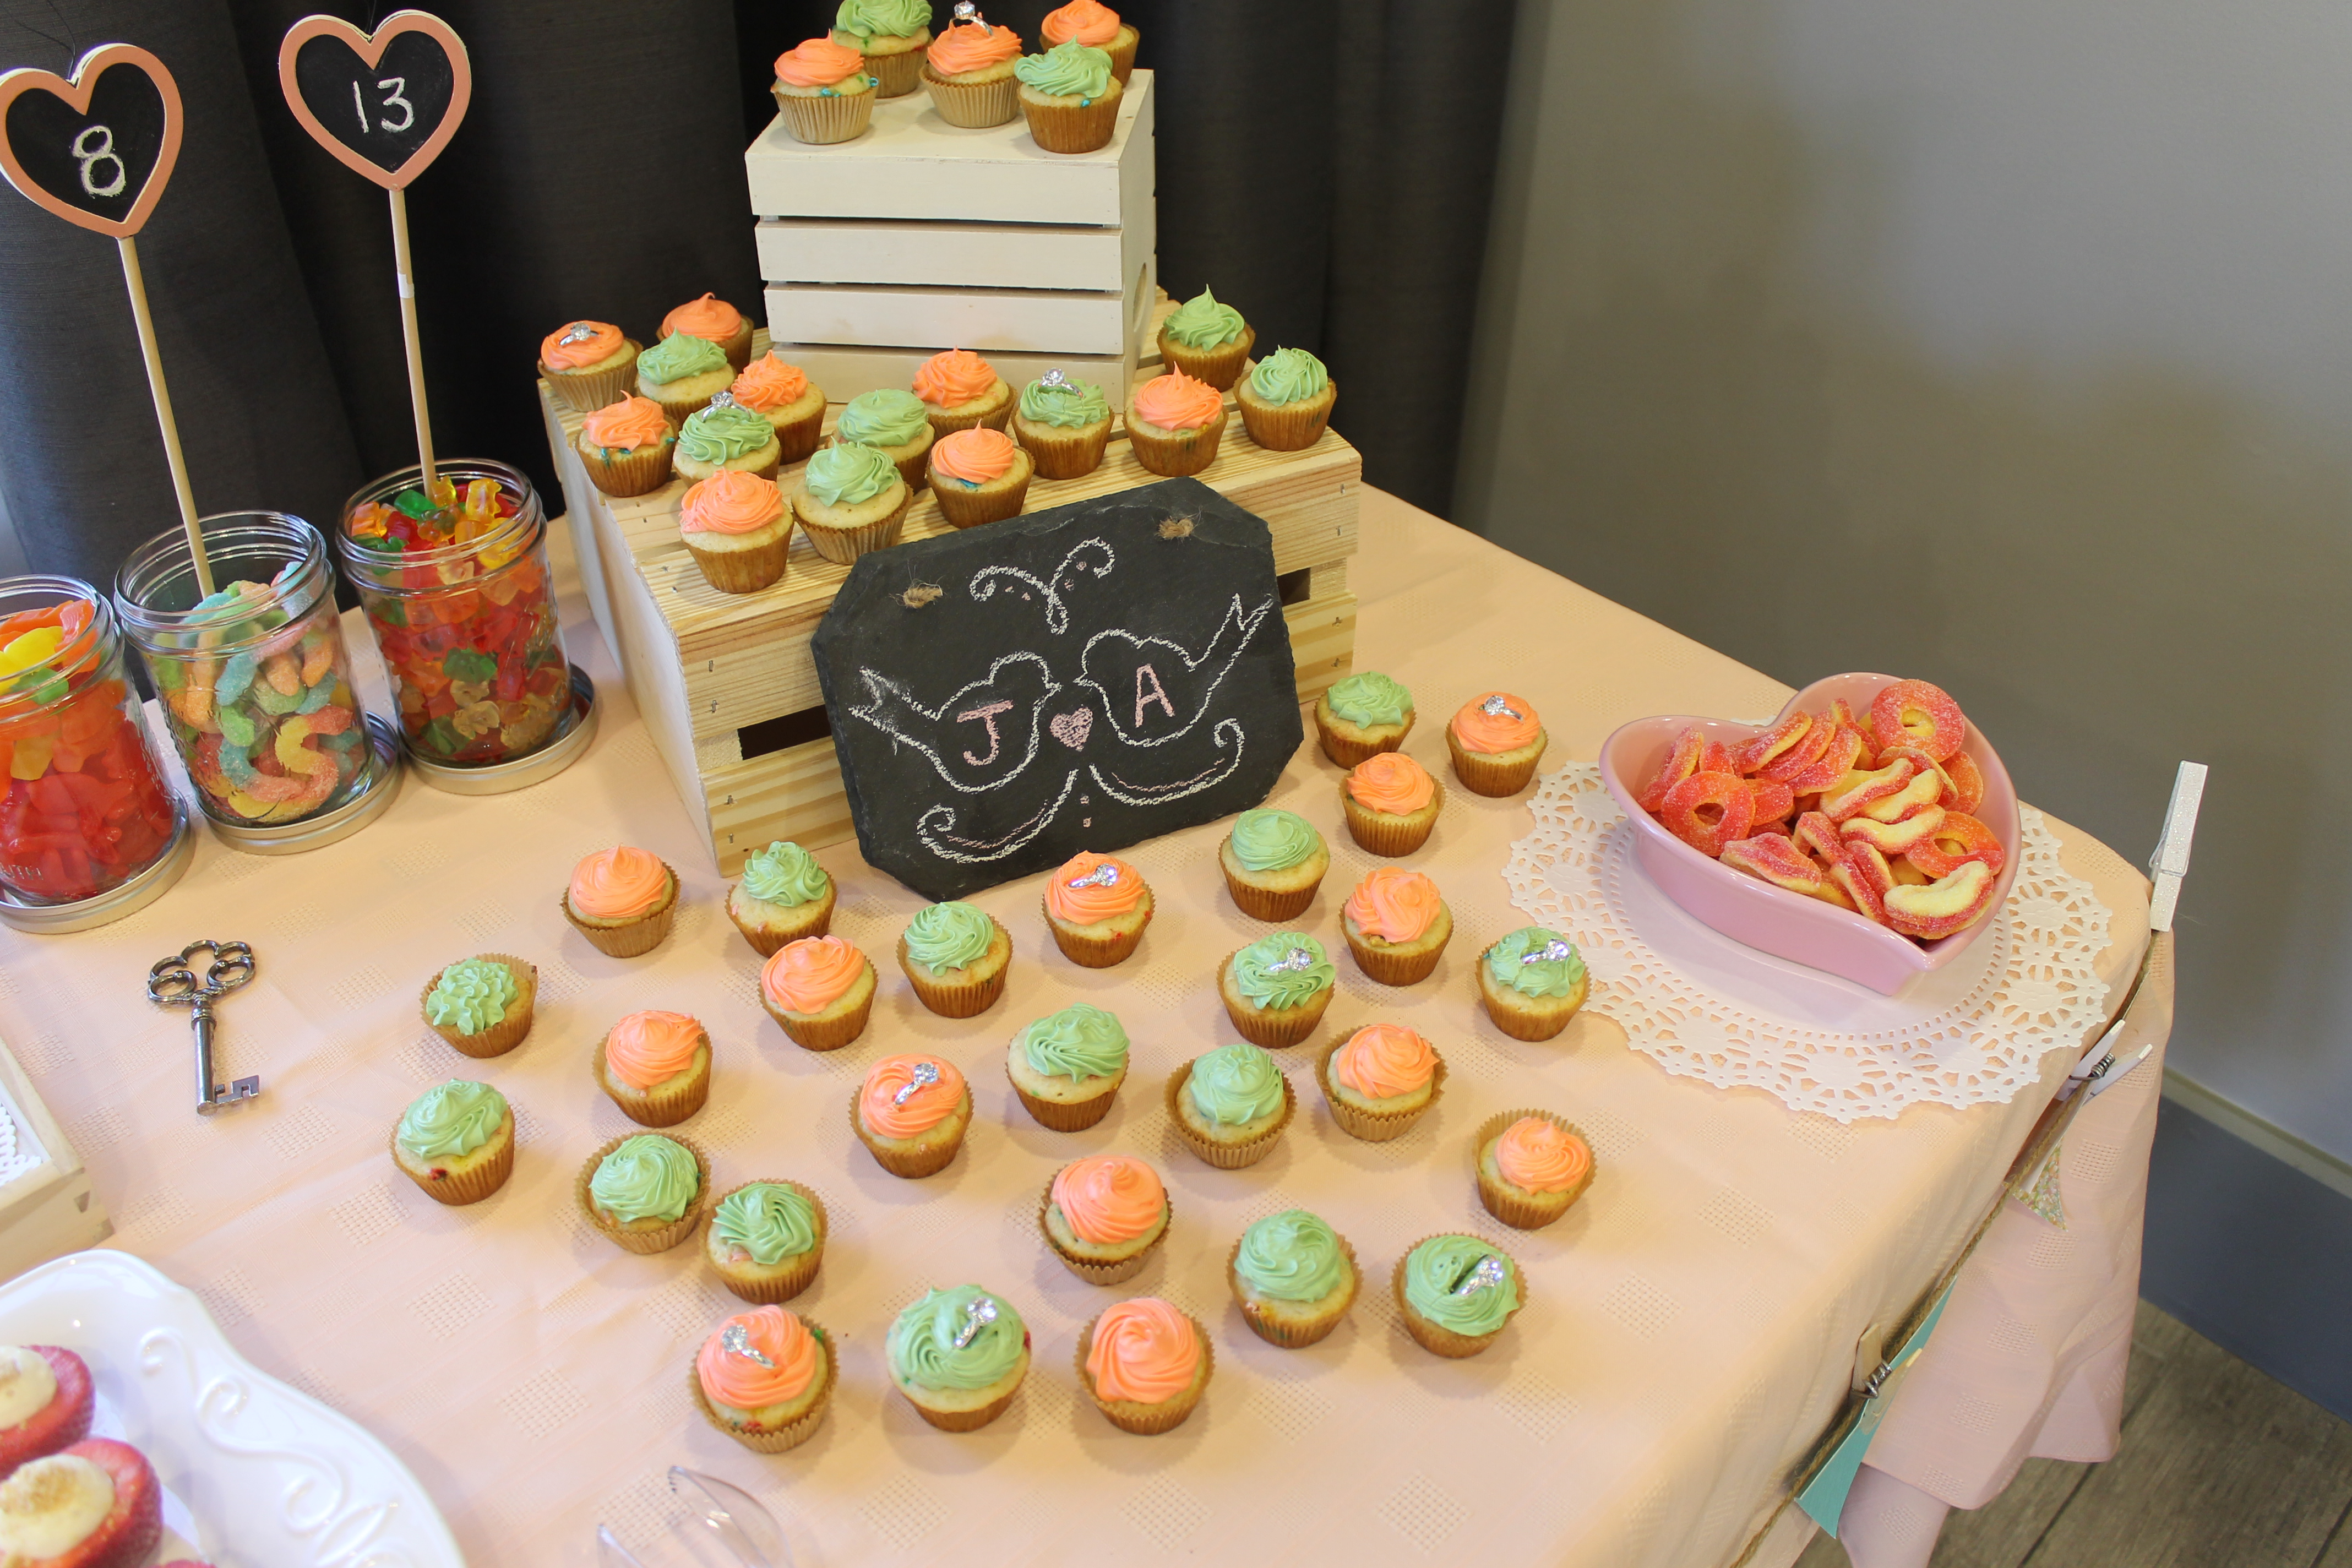 jenns wedding colors are mint coral so we used the same theme for her shower with thoughts that she could use everything for the wedding too